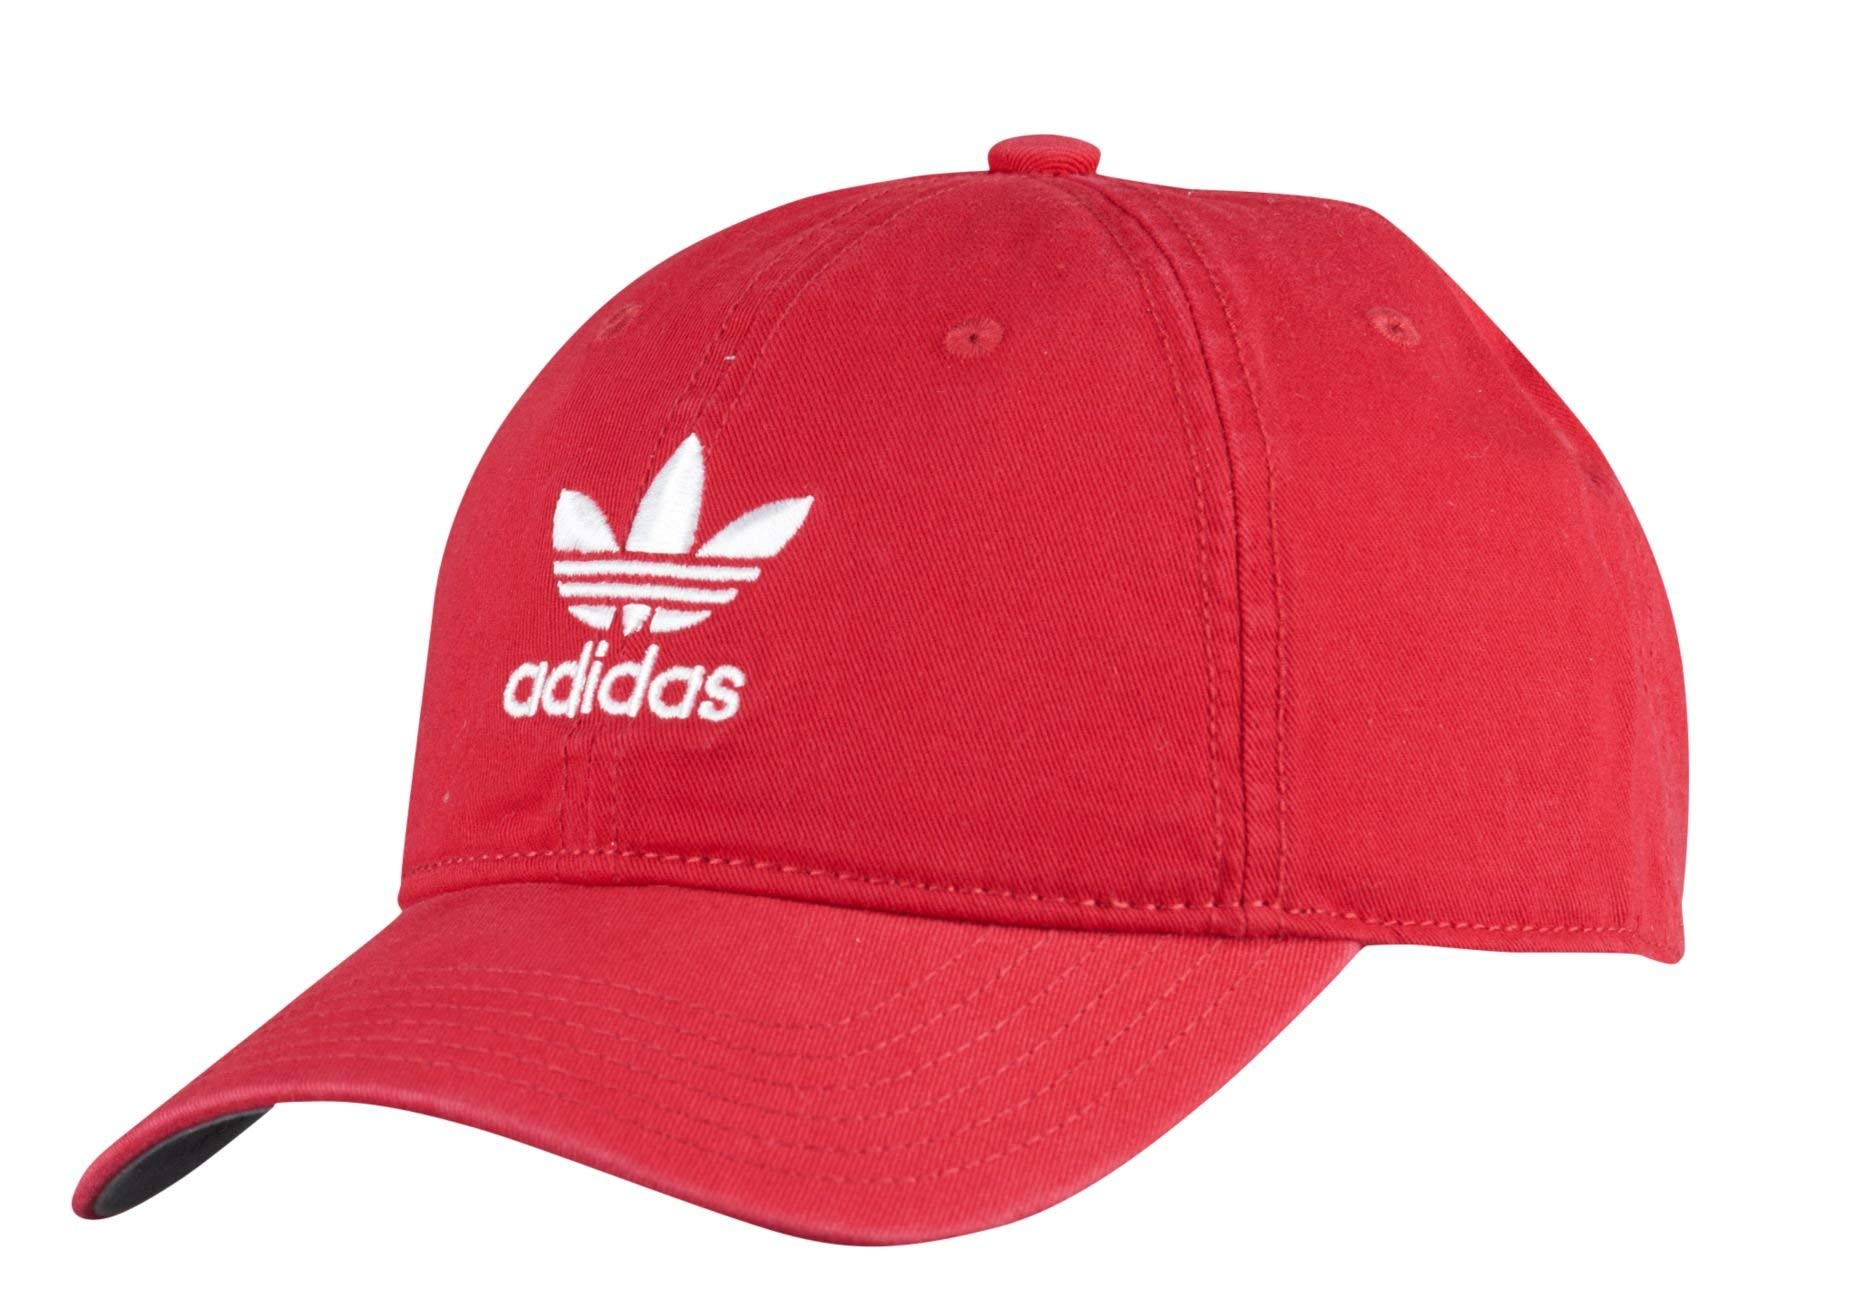 on sale ab58c f00a8 new zealand adidas mens originals relaxed strapback cap scarlet red white  one size a31a8 da3de